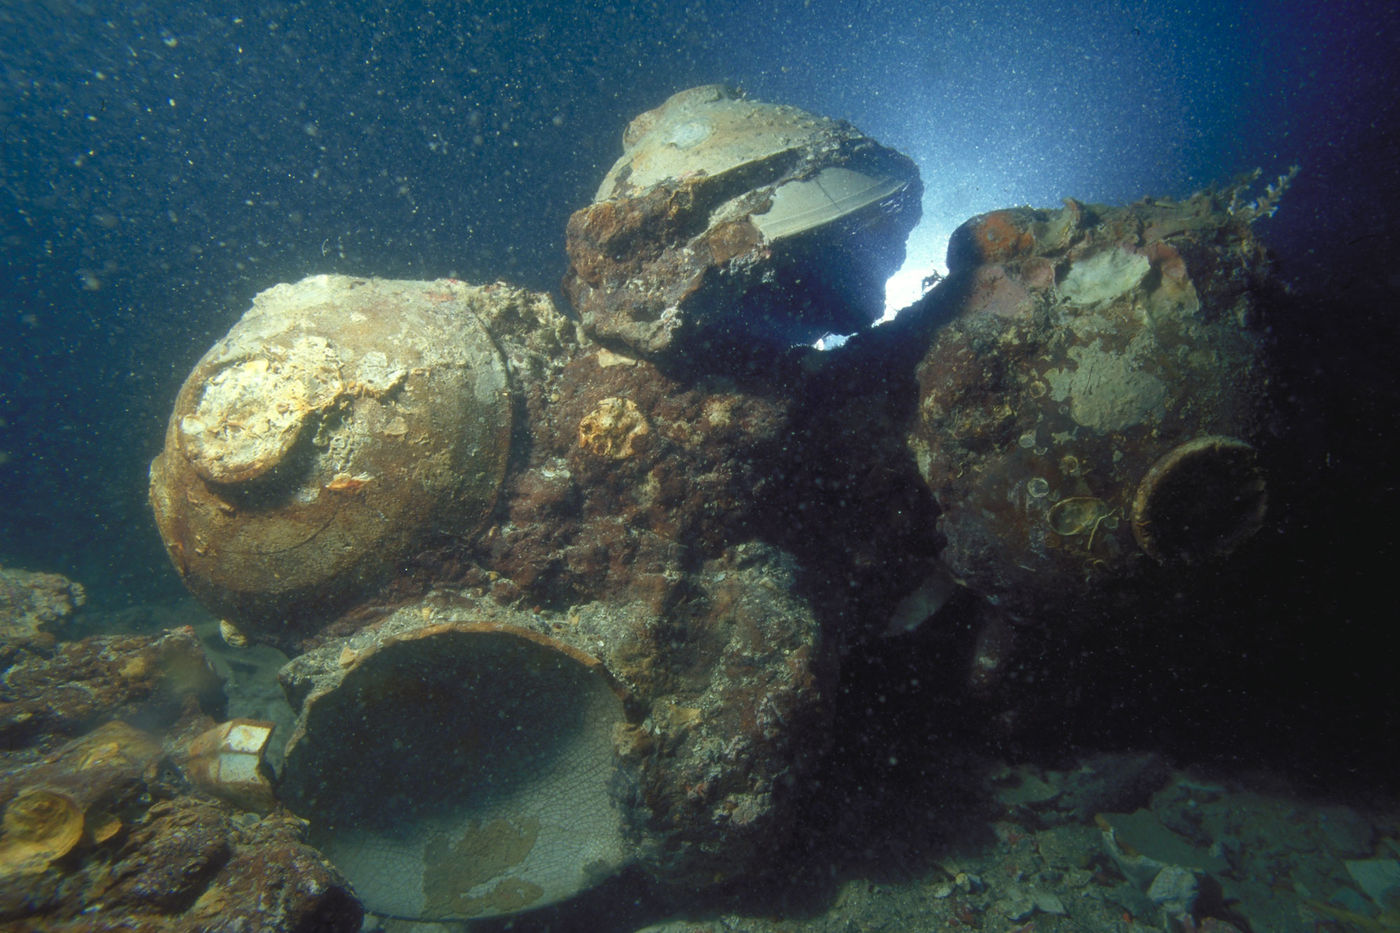 Several ceramic bowls rest on the seafloor, stuck together along with corroded iron and remnants of sea life.